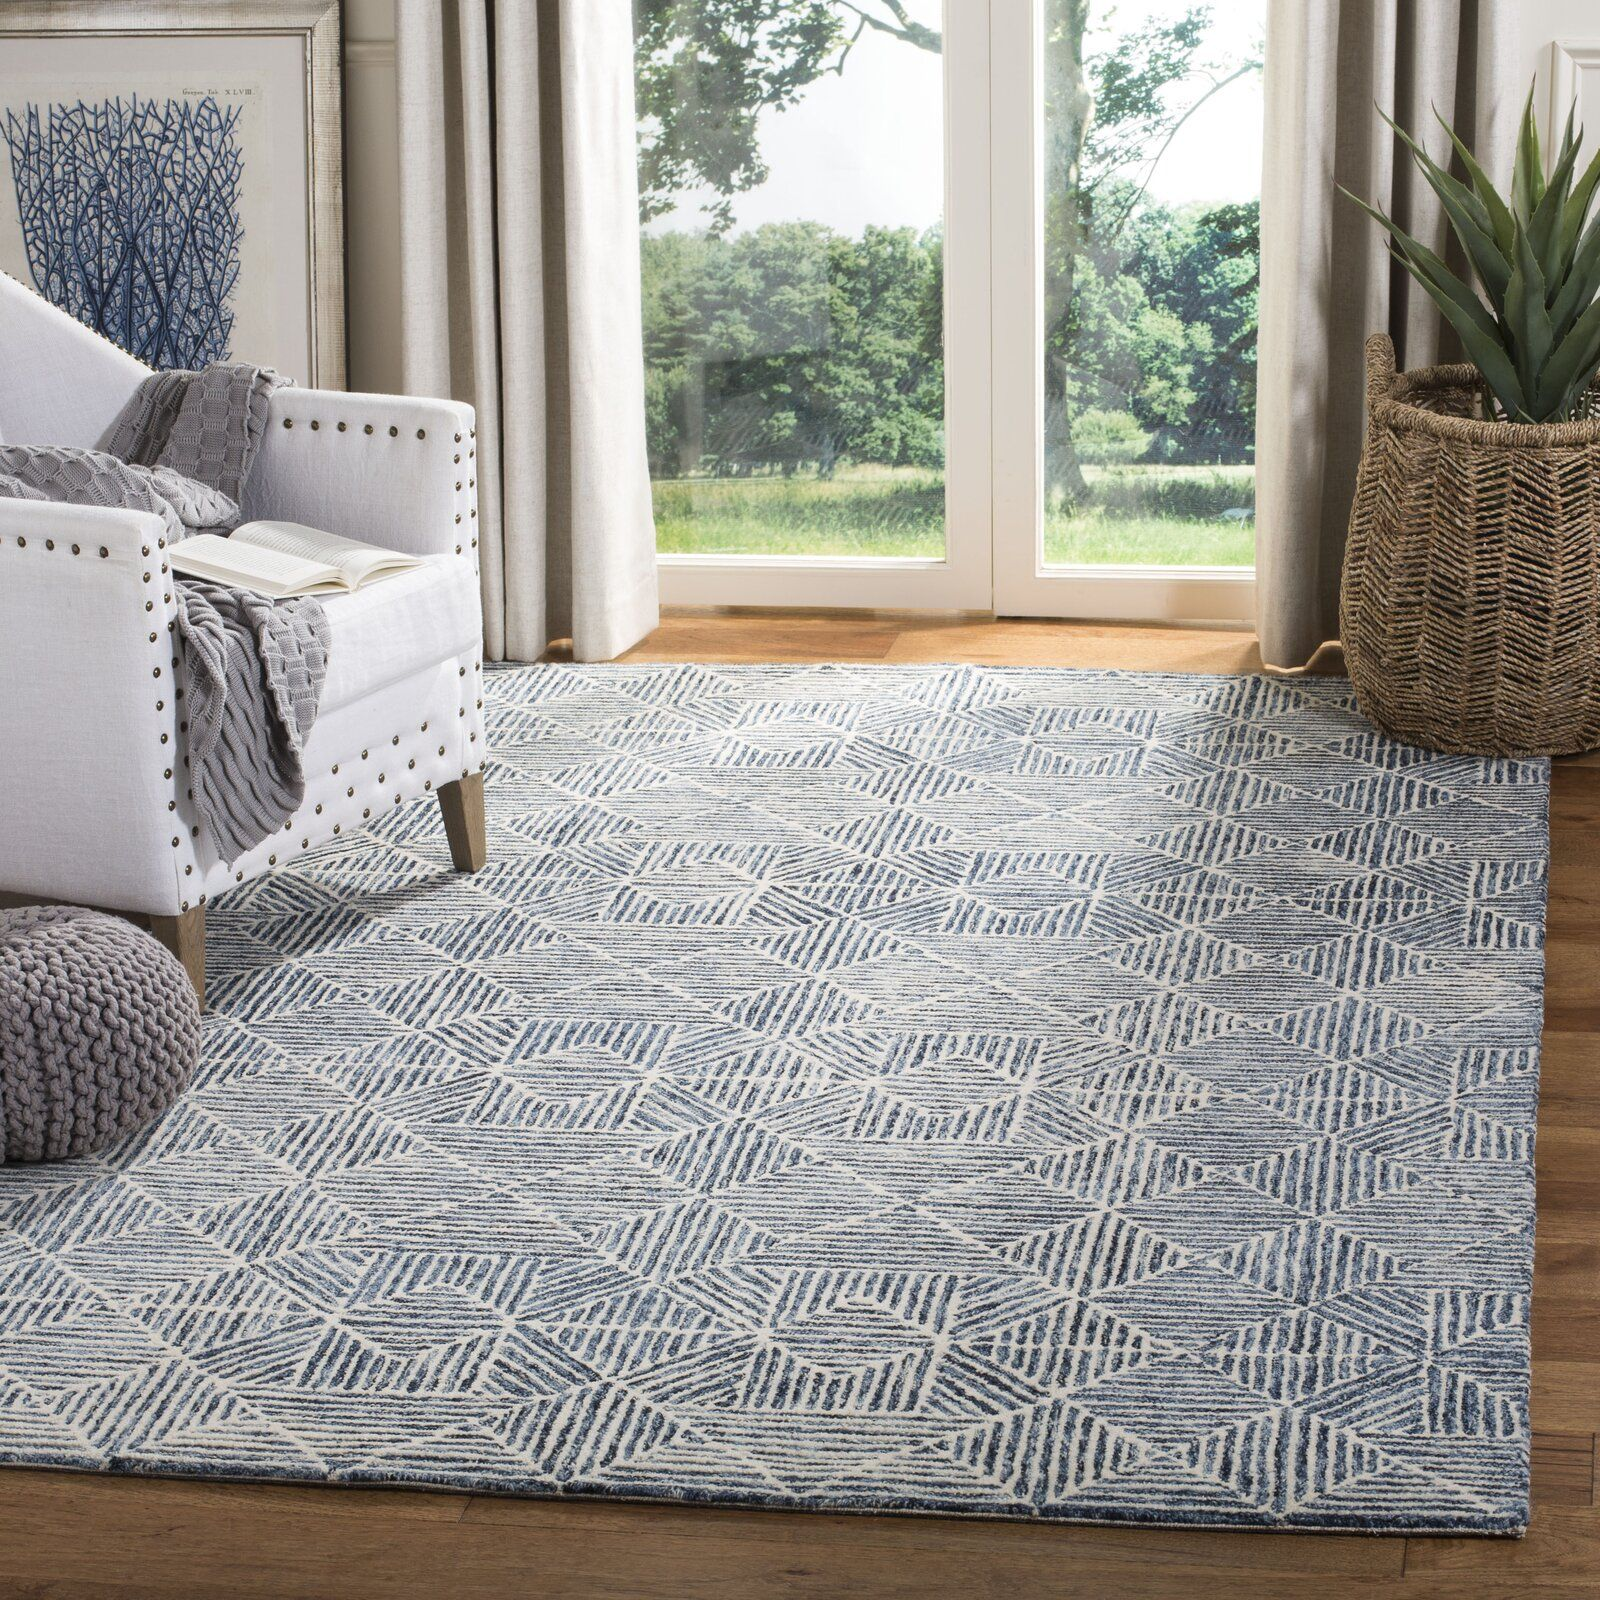 George Oliver Gaither Hand Tufted Wool Light Blue Gray Area Rug Wayfair Blue Gray Area Rug Living Room Area Rugs Area Room Rugs